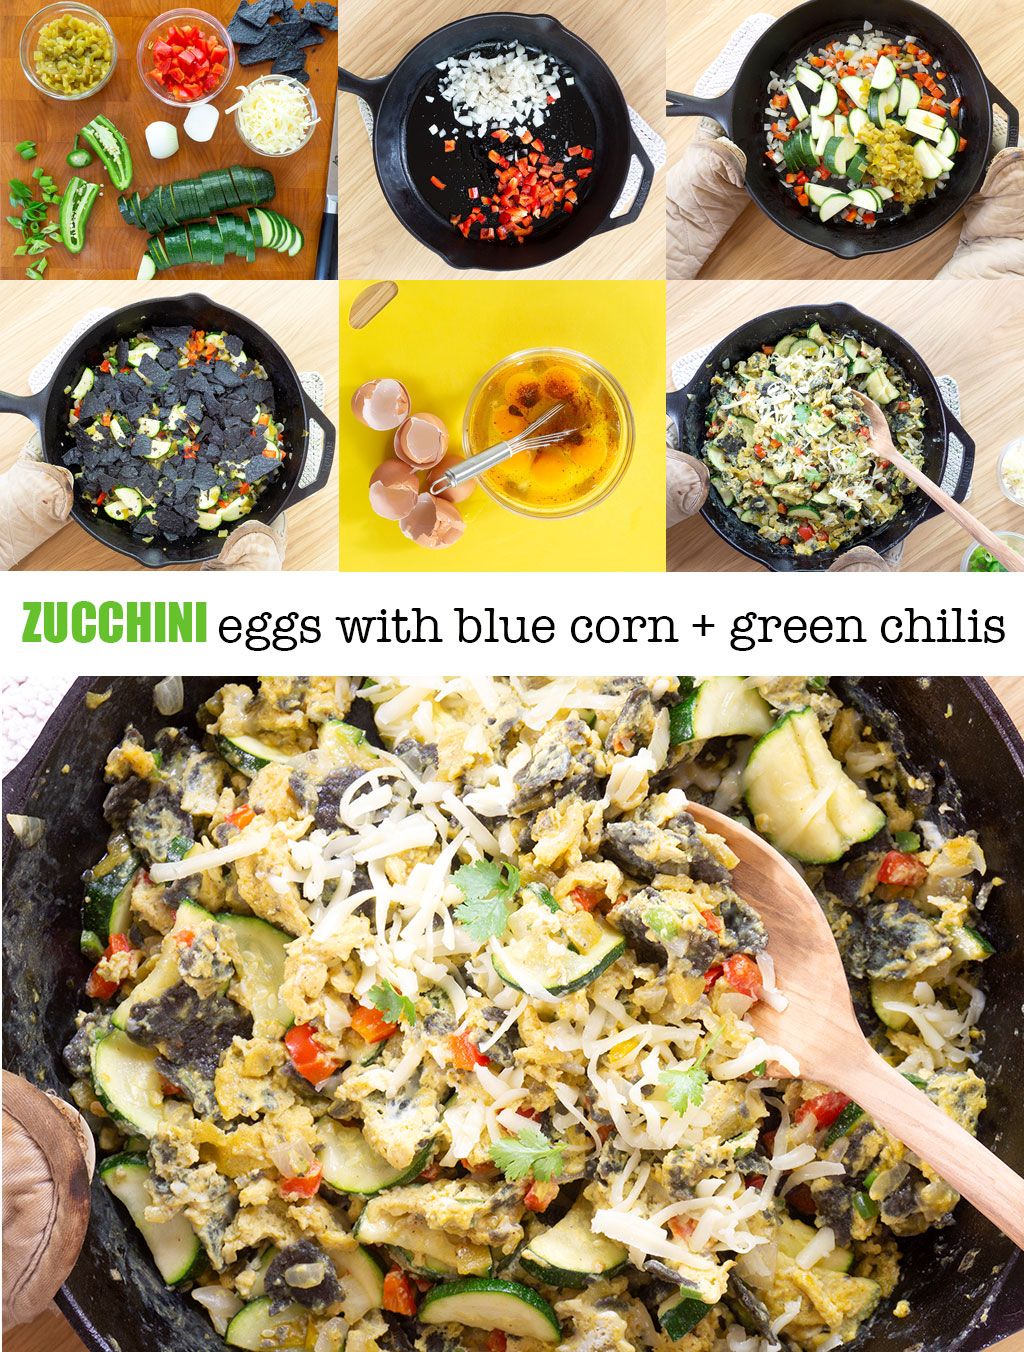 Step by Step Photos for how to make Zucchini Breakfast Eggs